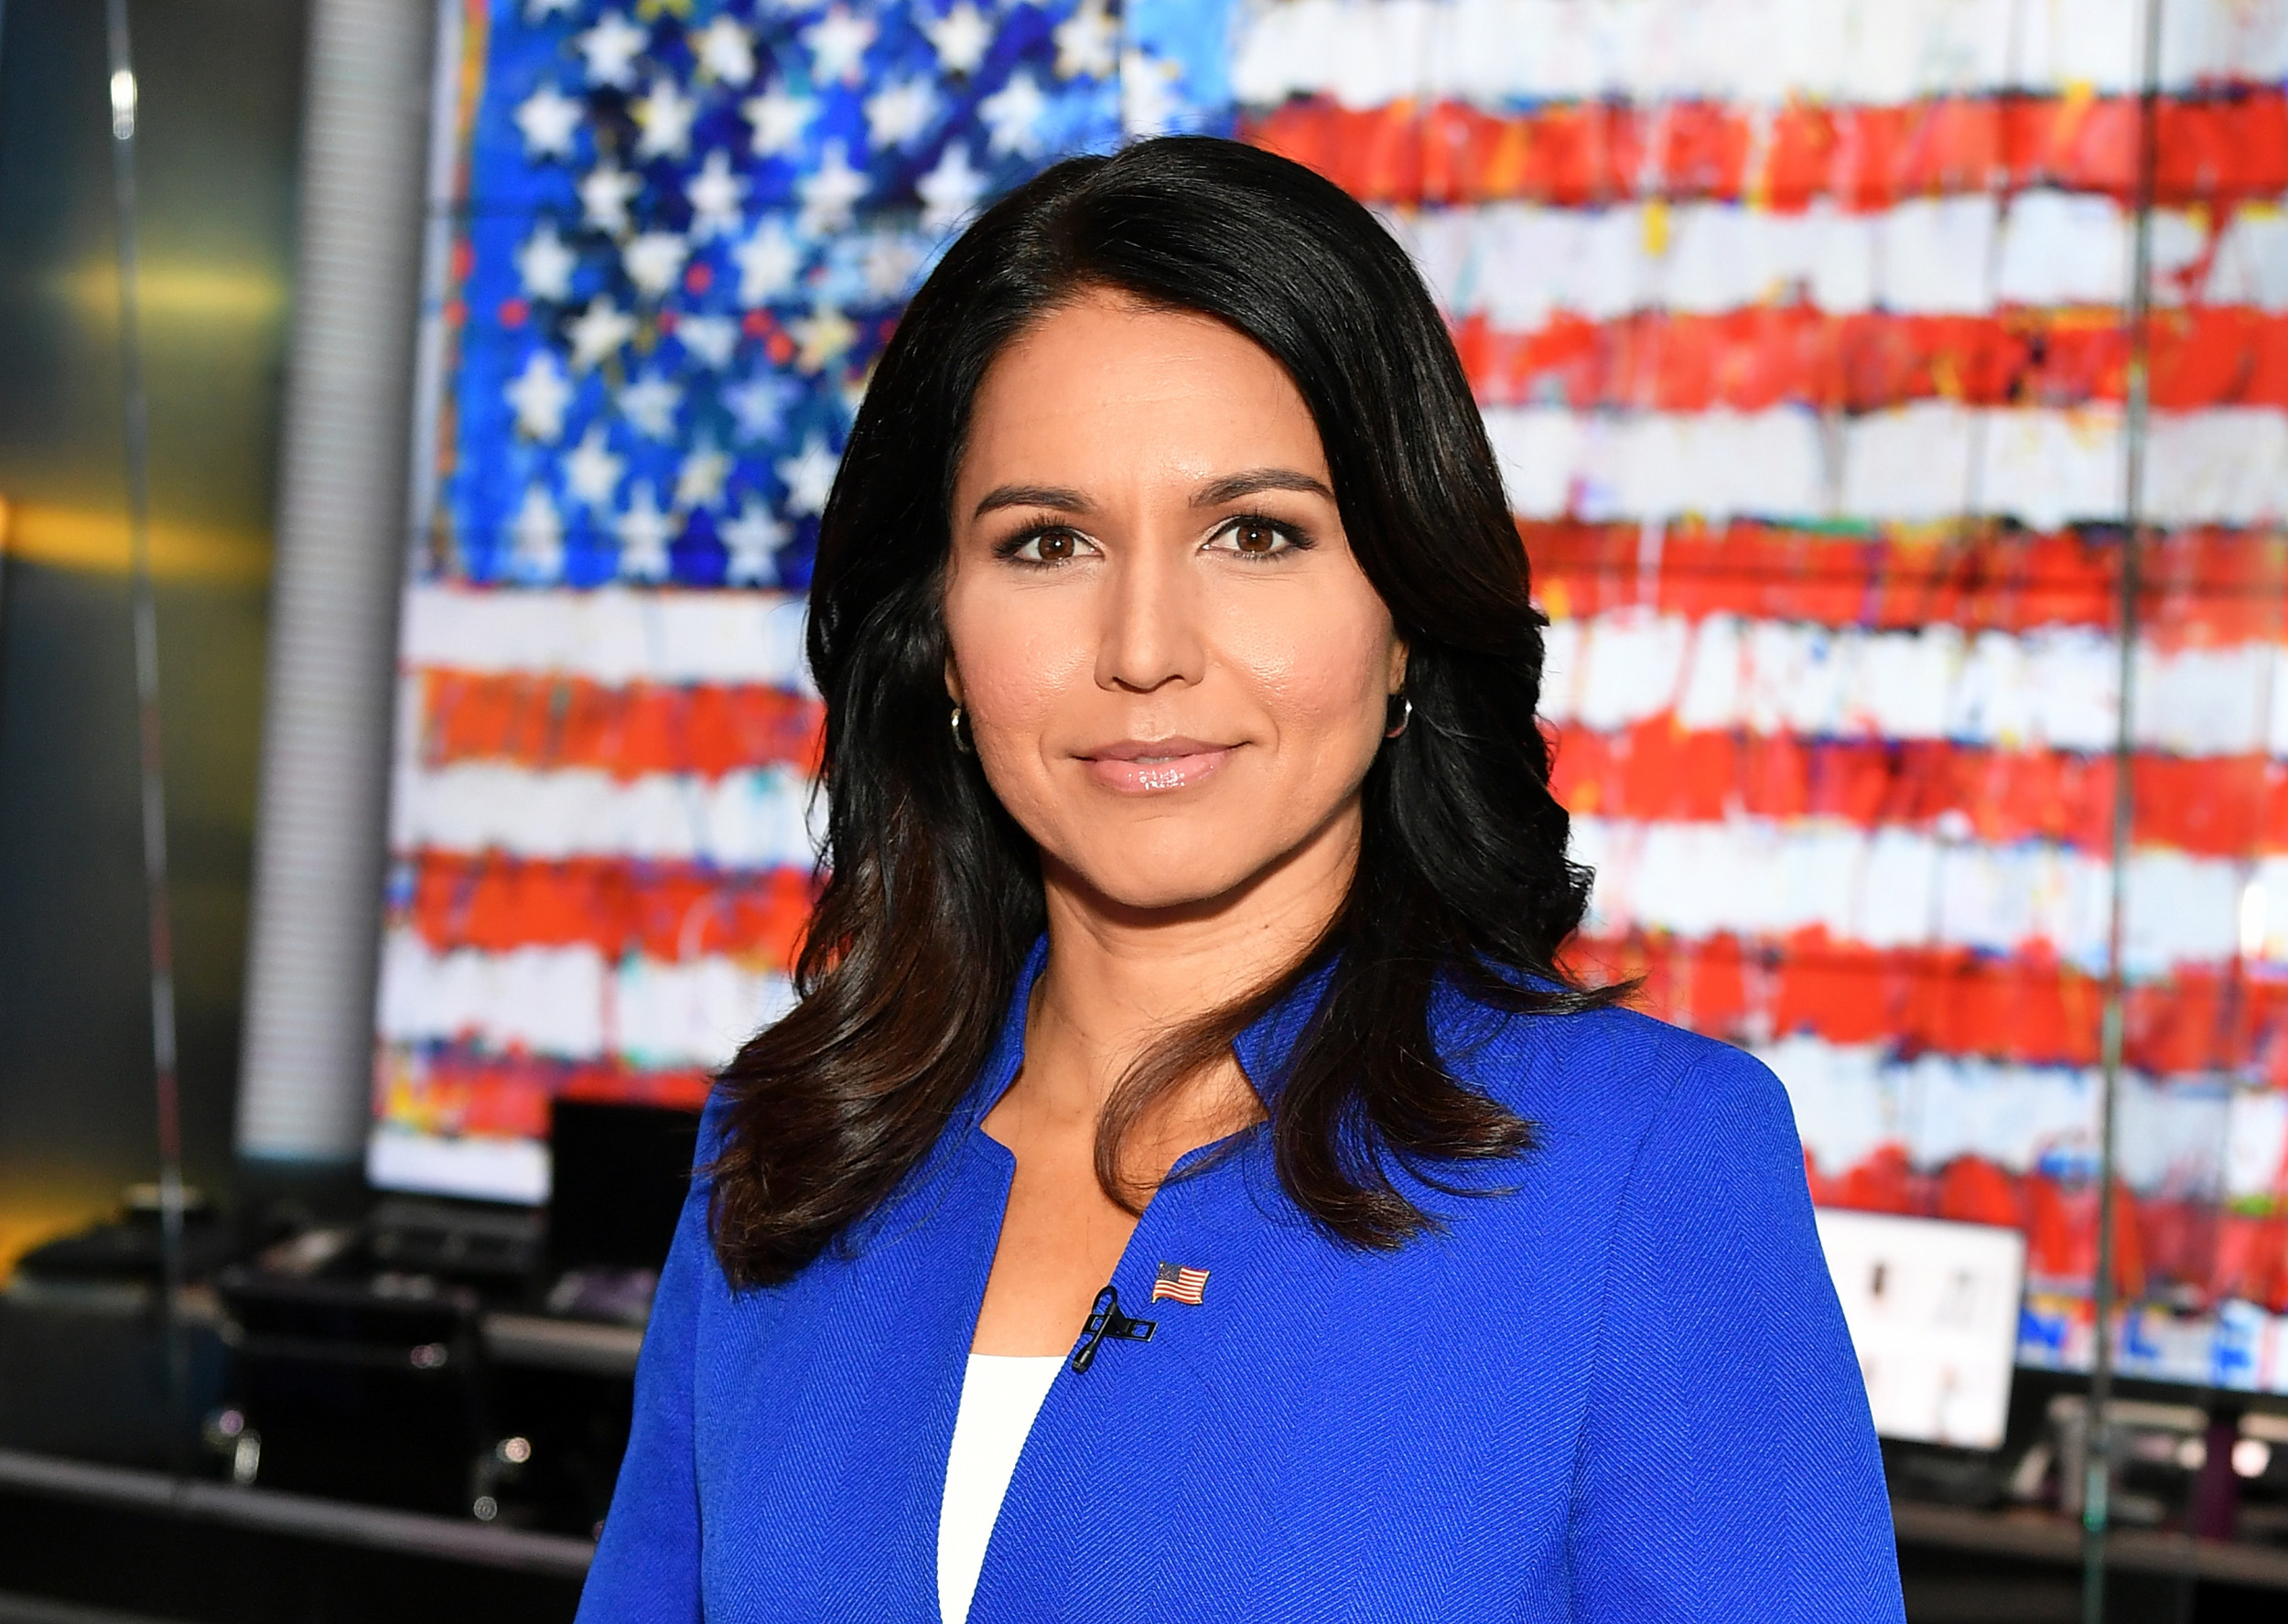 Tulsi Gabbard is being used by the Russians, and to a former U.S. double agent, the evidence is clear | Opinion